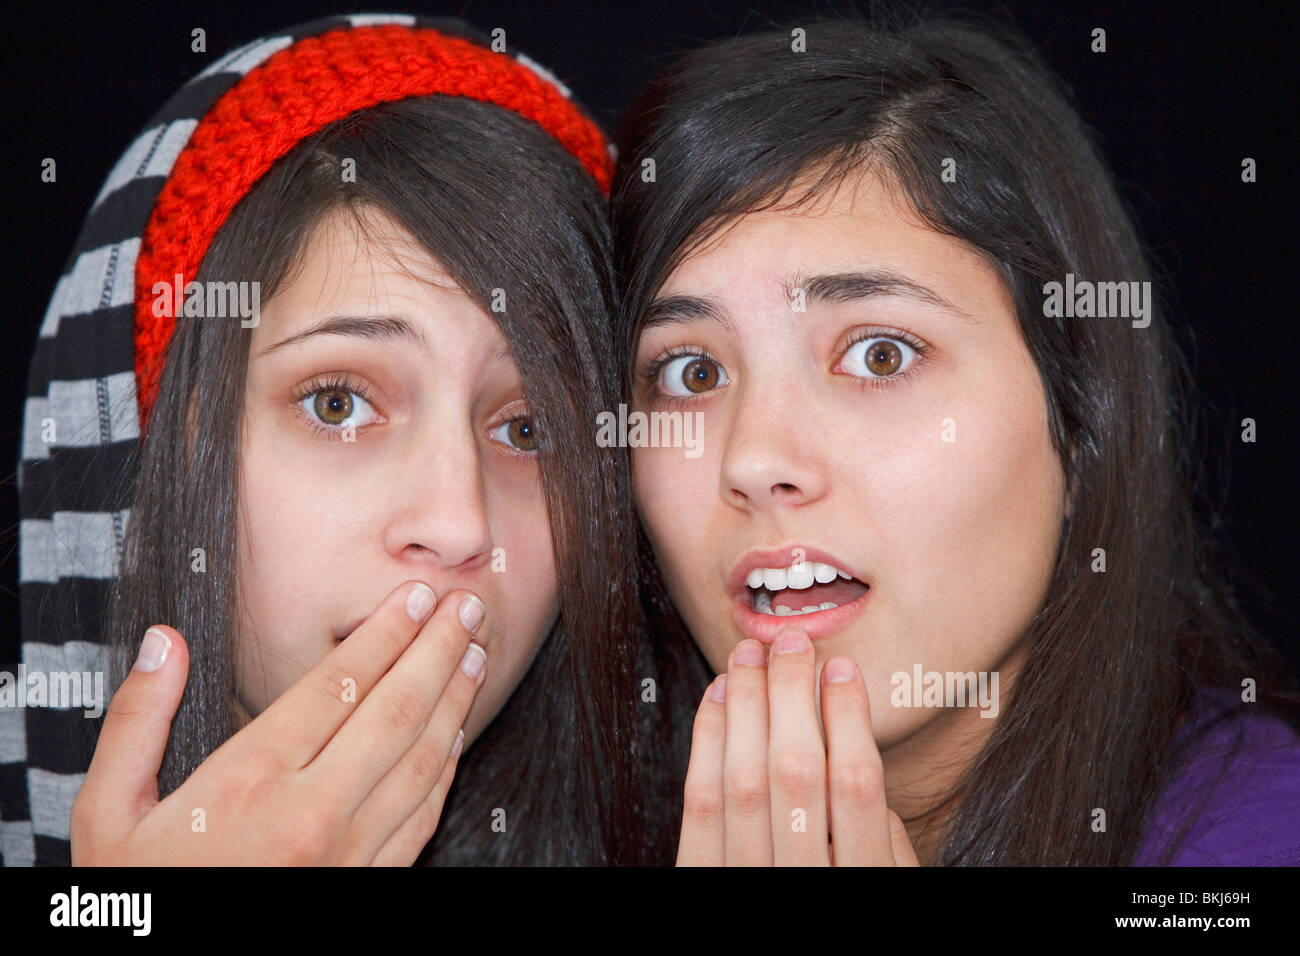 Teenage Girls With A Look Of Surprise - Stock Image